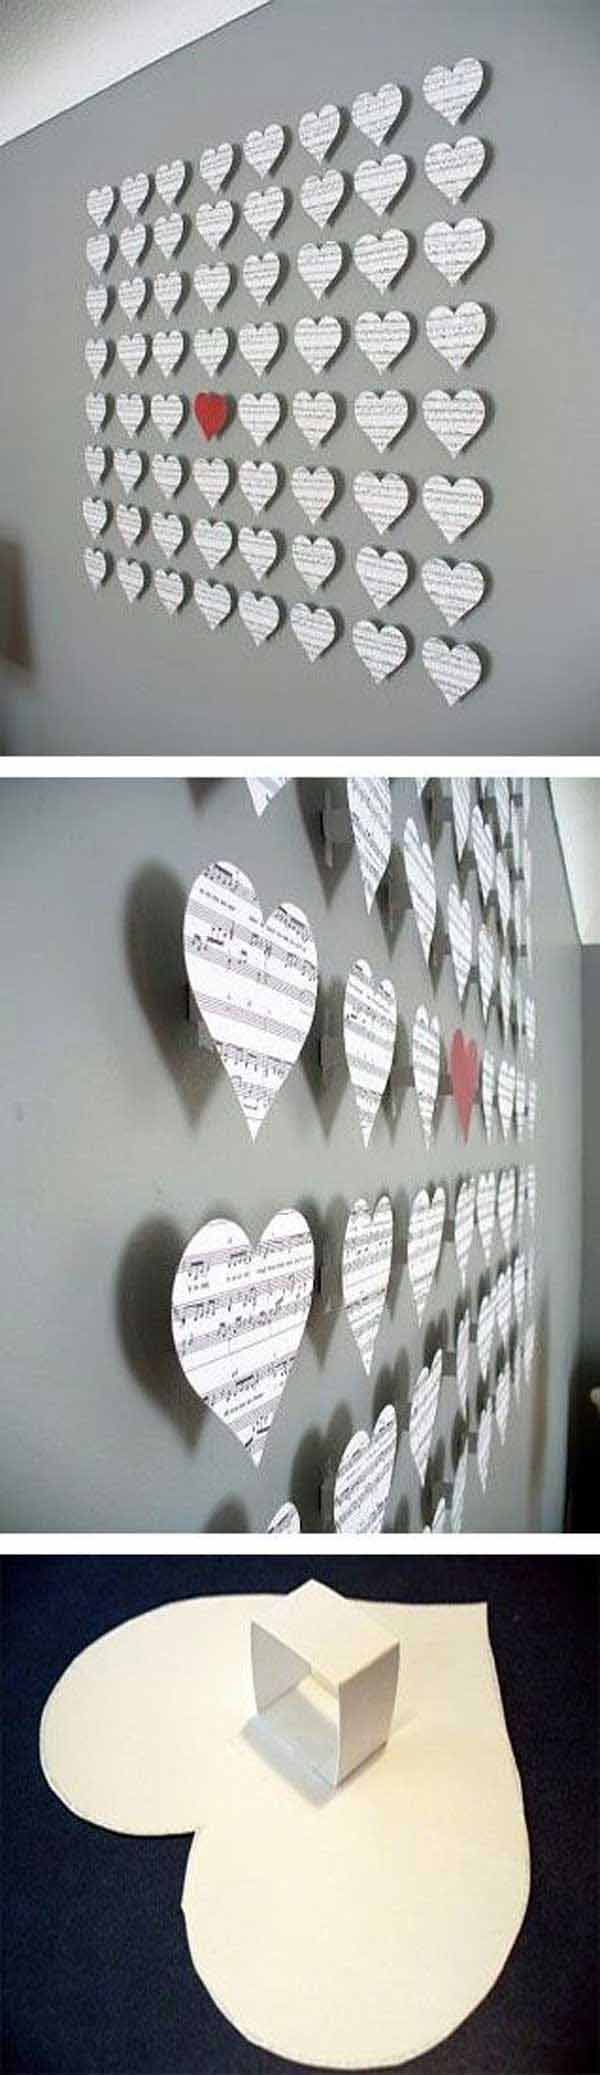 26 DIY Cool And No-Money Decorating Ideas for Your Wall - Lovely Hearts Shaped Out of Musical Scores.